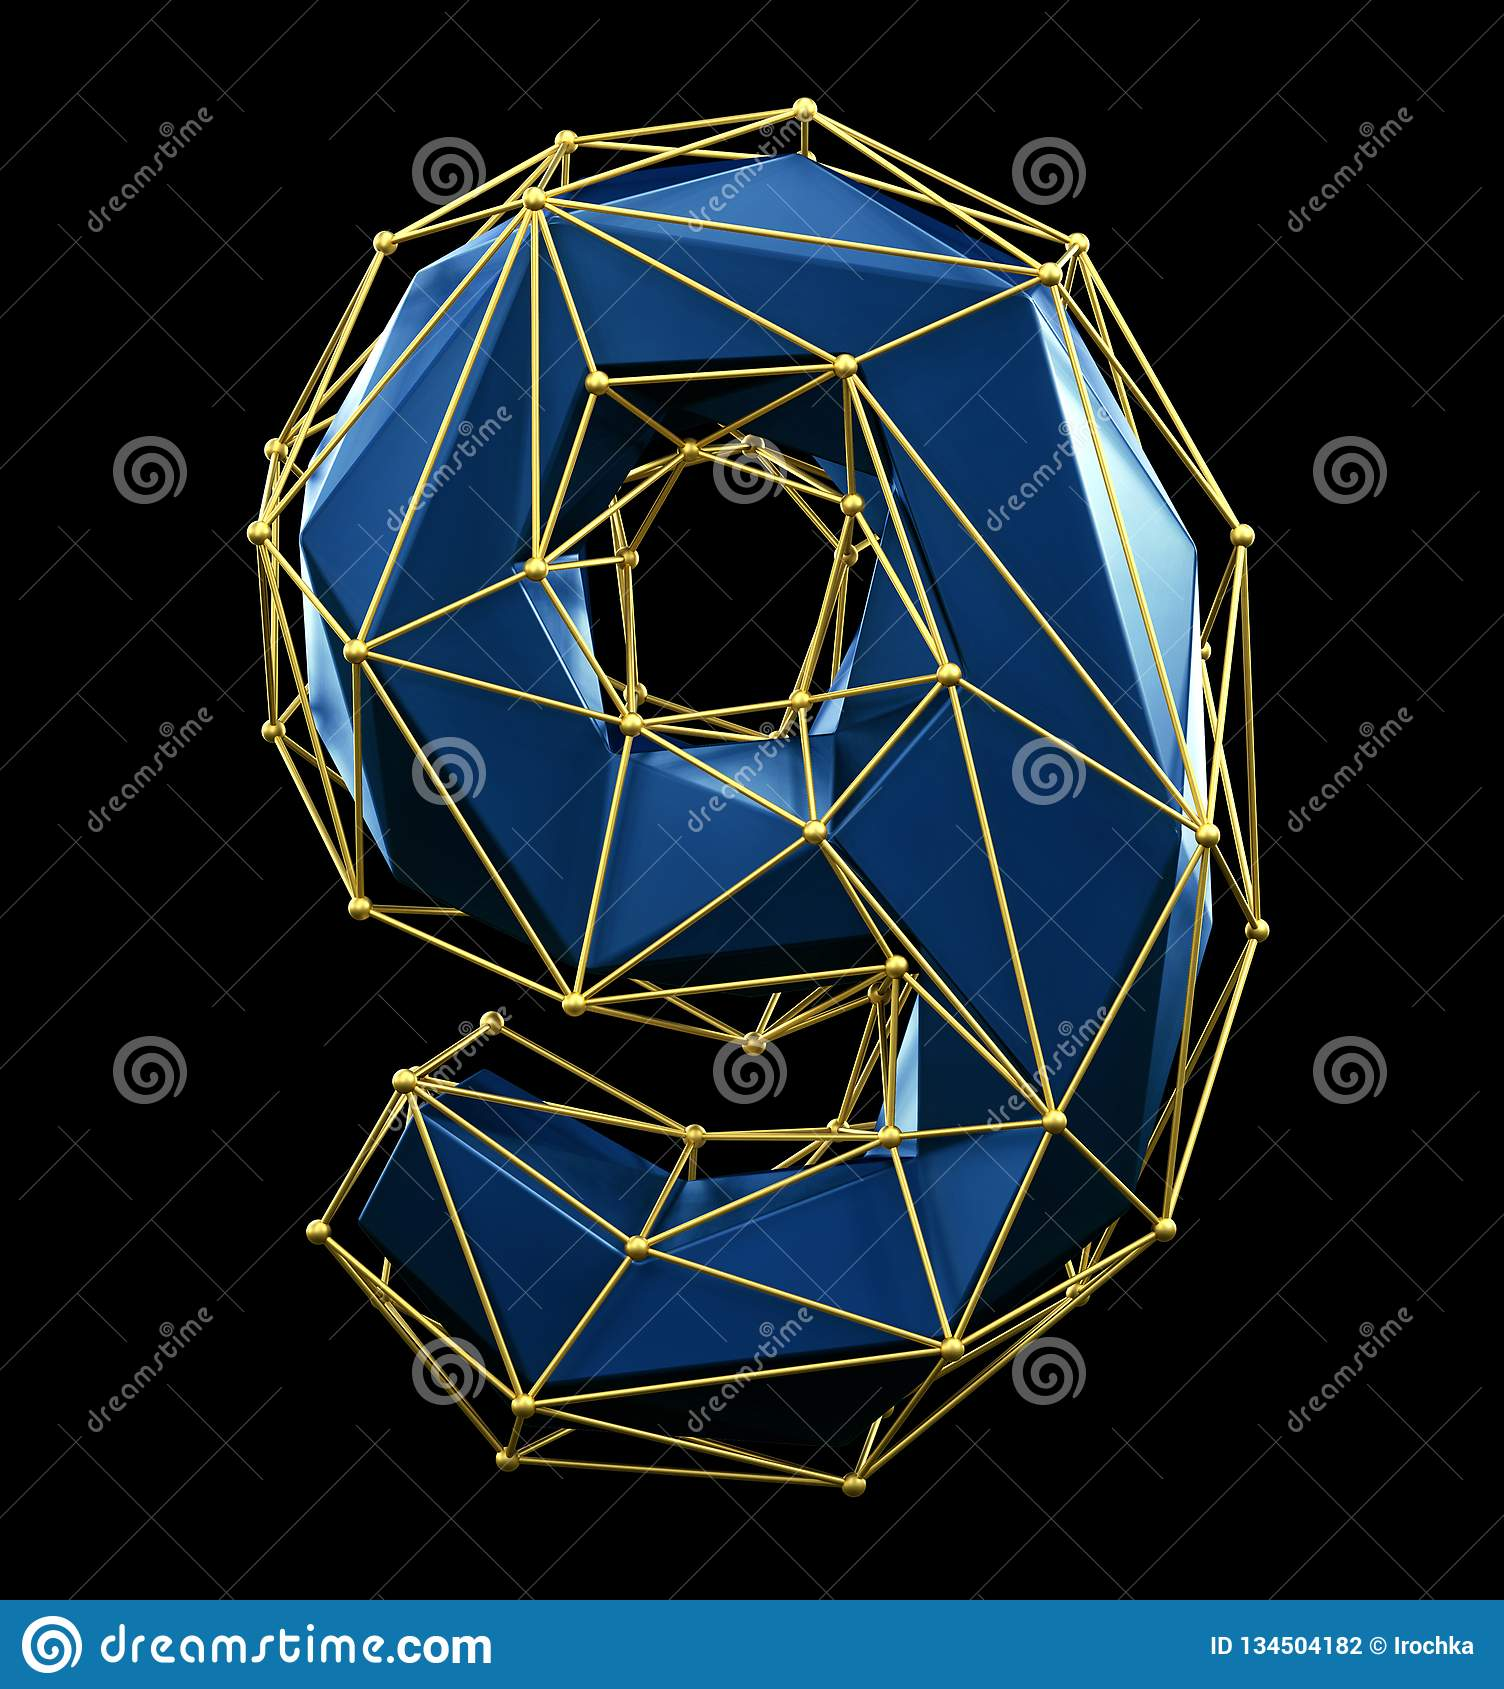 Low poly style number 9. Blue and gold color isolated on black background. 3d